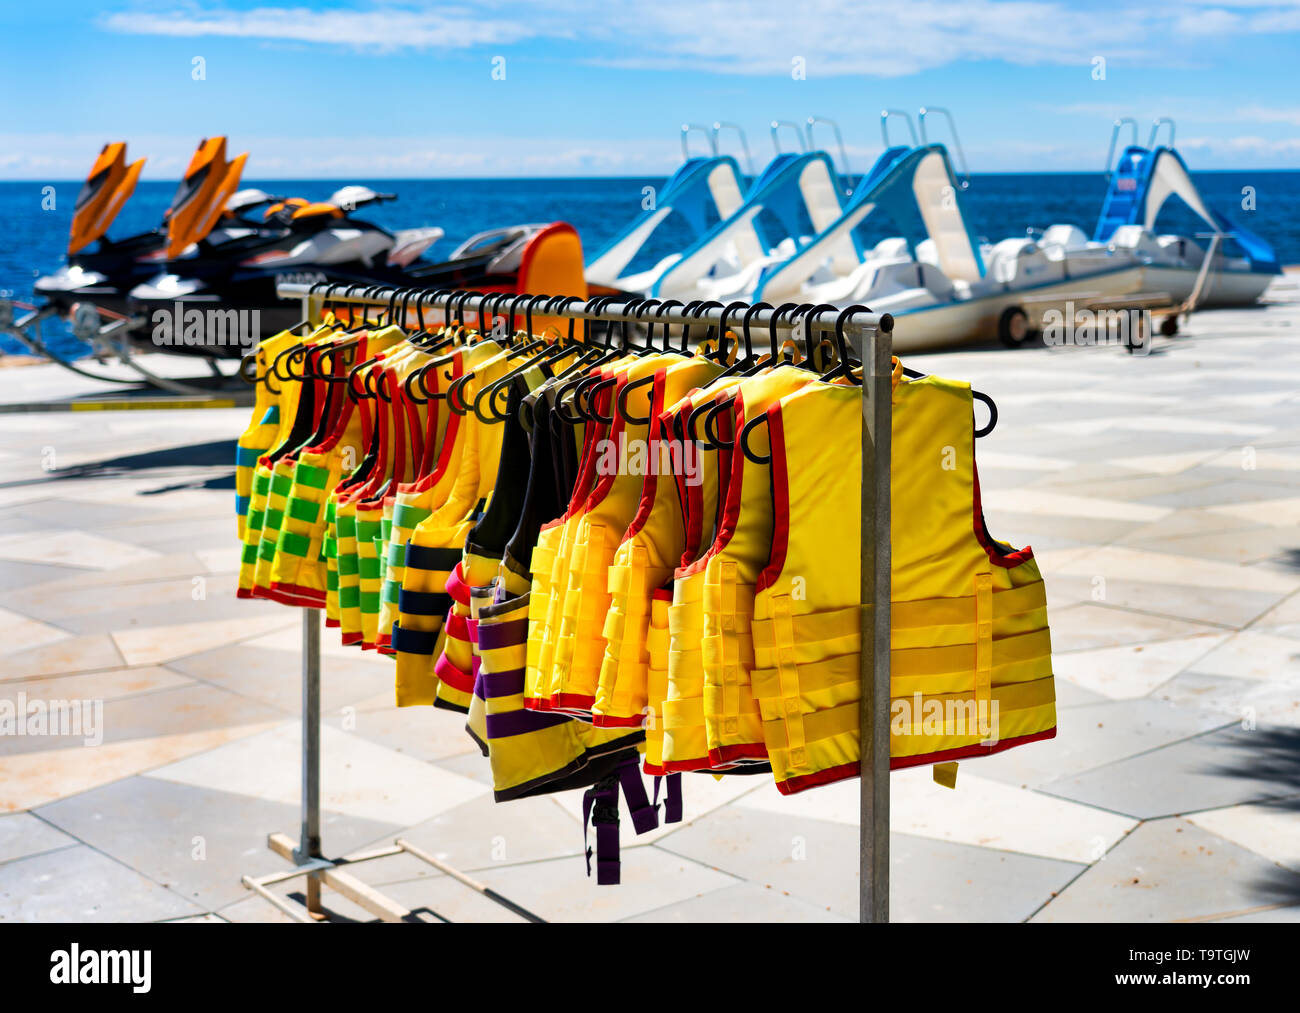 A lot of life jackets hanging on the beach. Water scooter and pedal boat in the background. The concept of water safety. - Stock Image